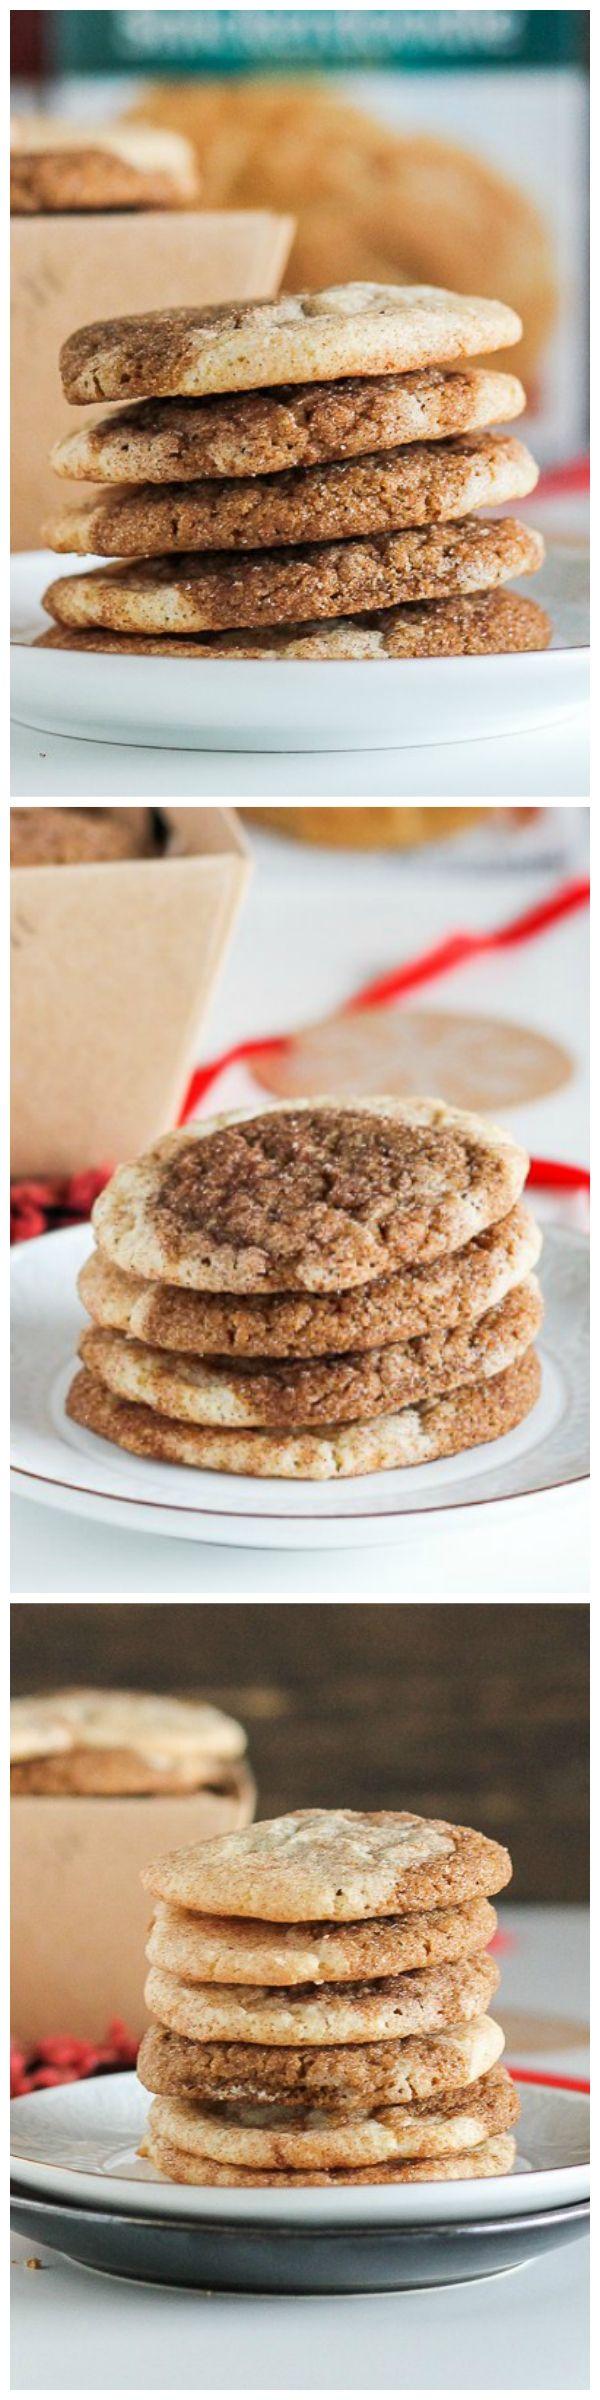 These Gingerbread Snickerdoodles - so easy to make, you won't believe it! They're super soft and chewy. #holidays #cookies #snickerdoodles #christmas